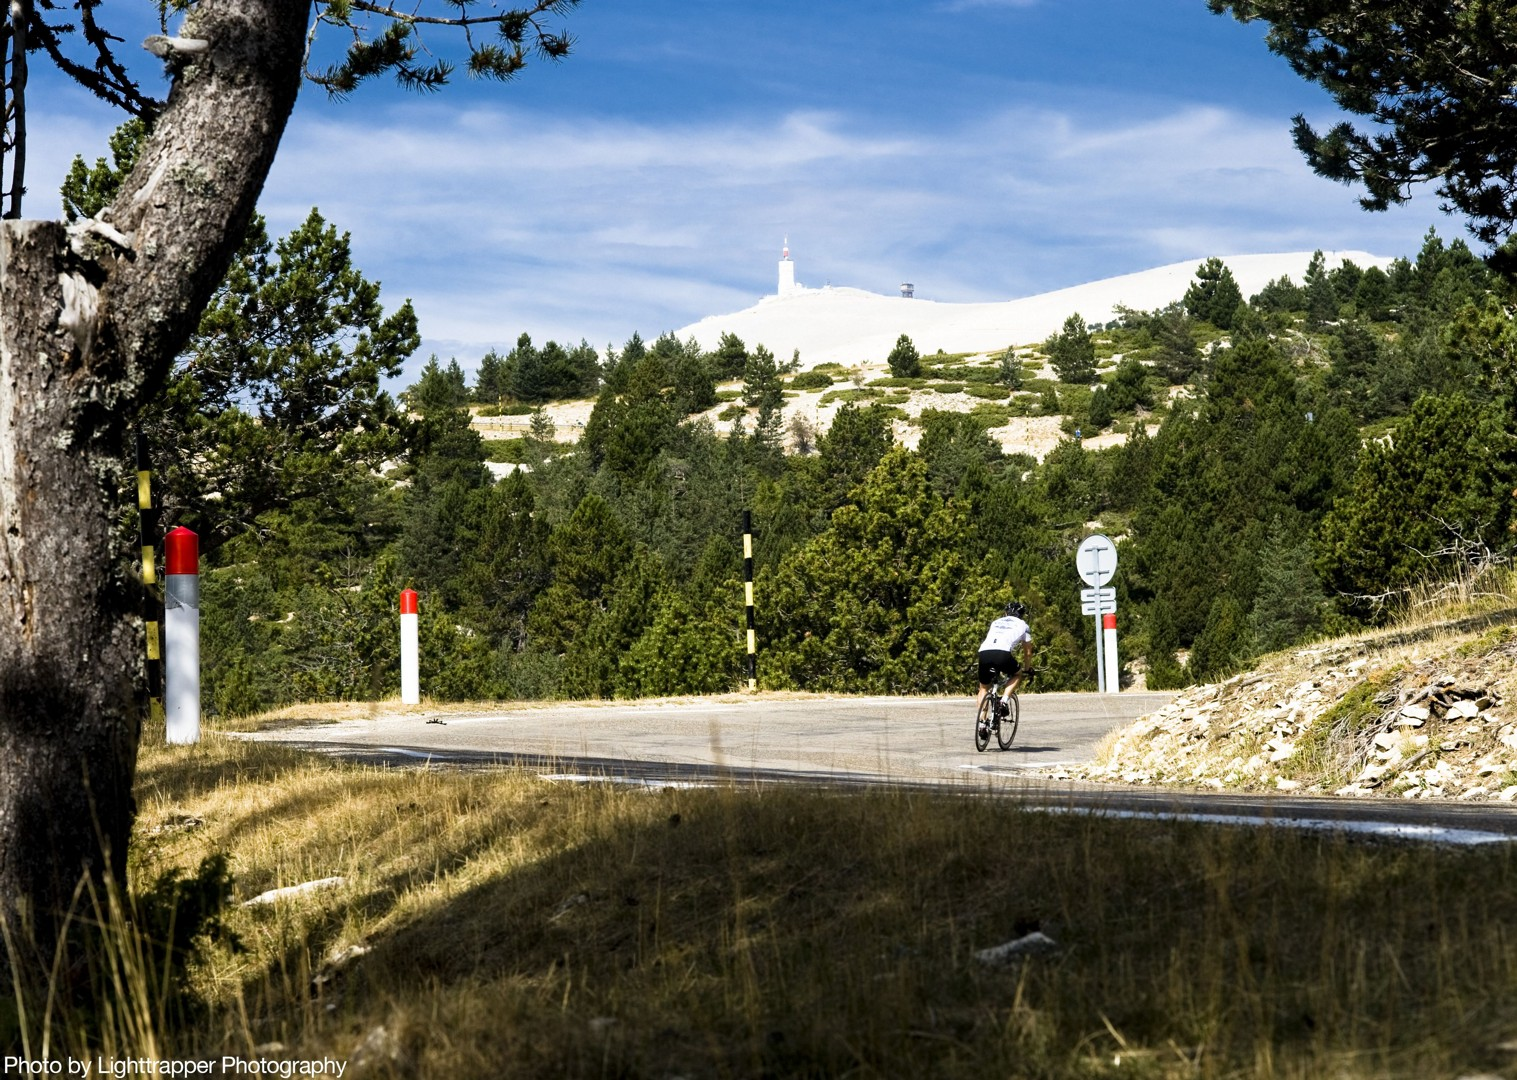 challenging-road-cycling-trip-french-alps.jpg - France - Alps - Mont Ventoux to Alpe d'Huez - Guided Road Cycling Holiday - Road Cycling